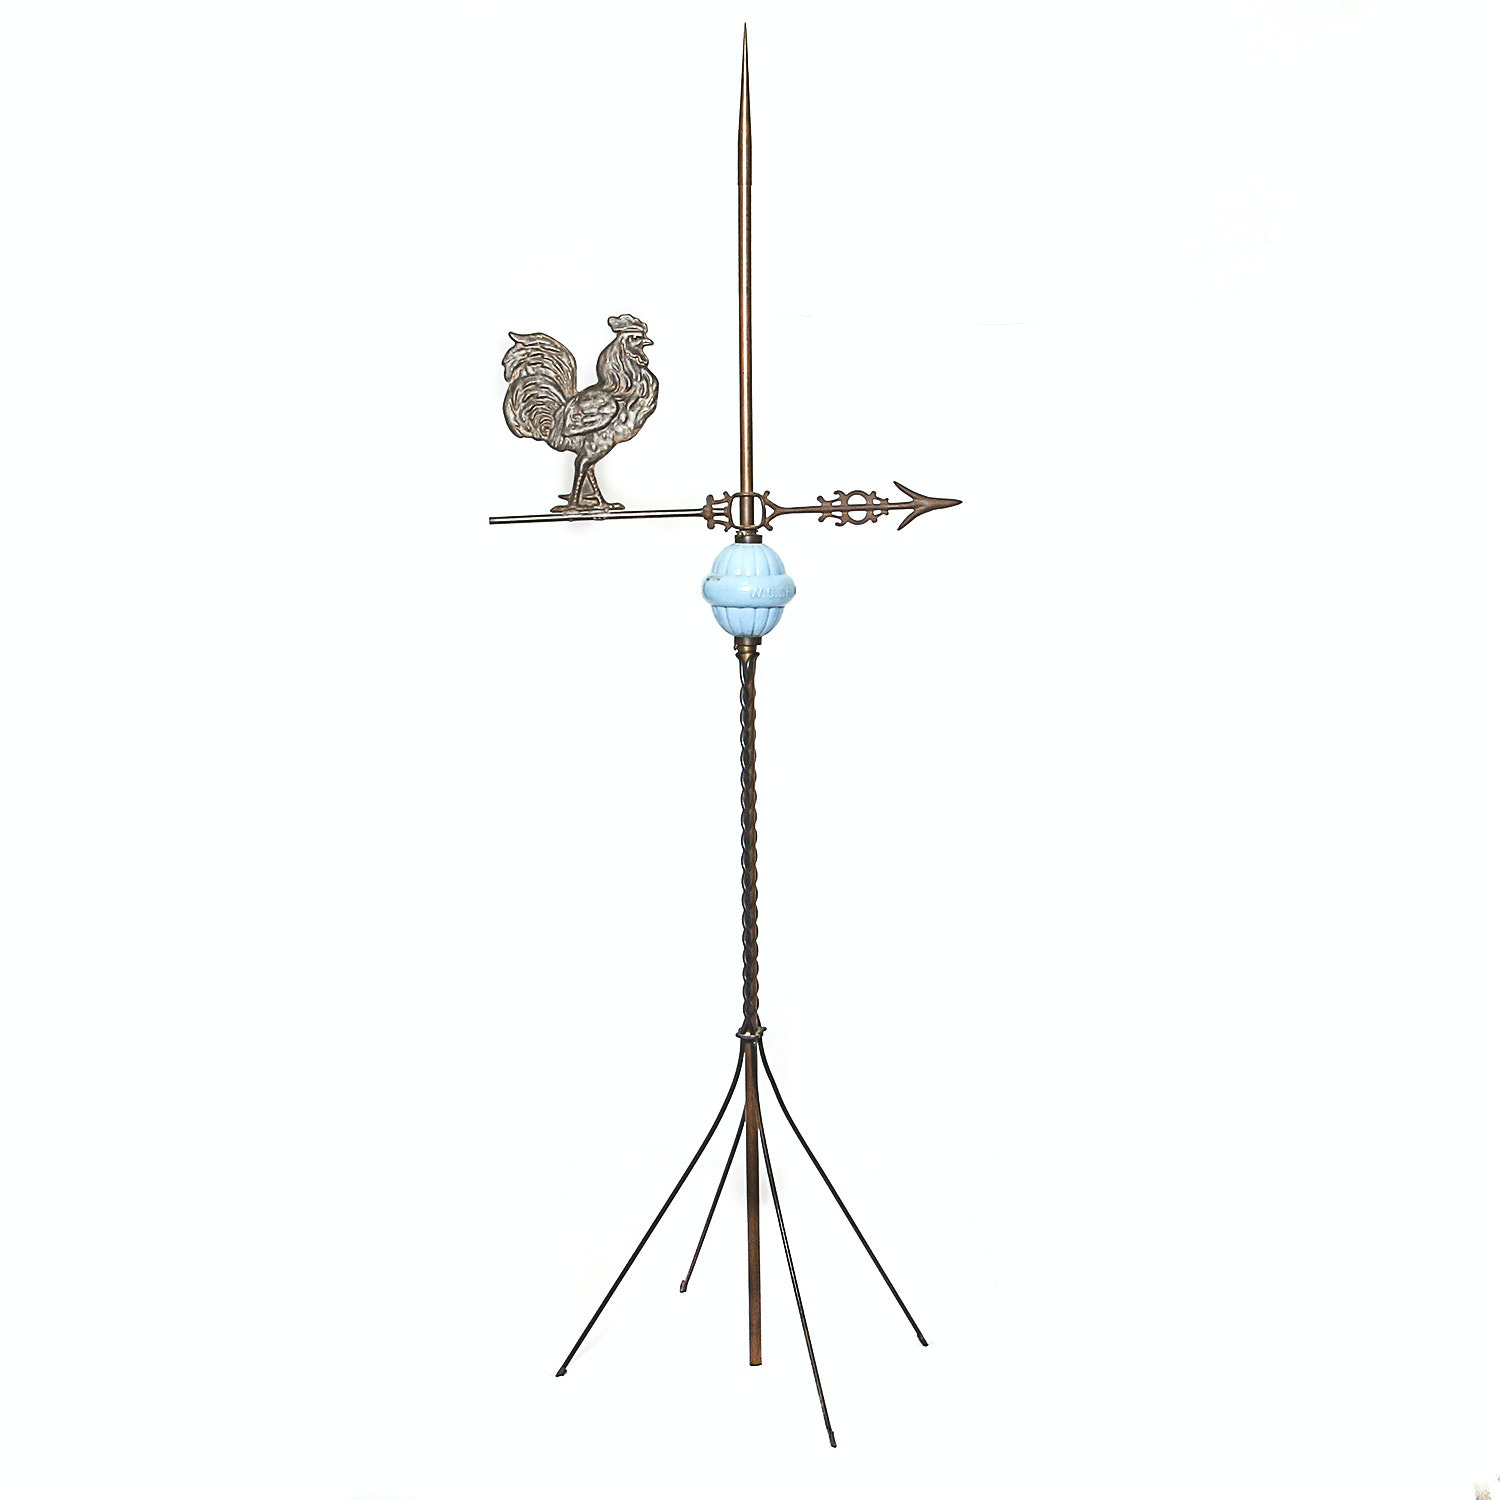 Antique Lightning Rod and Rooster Weathervane